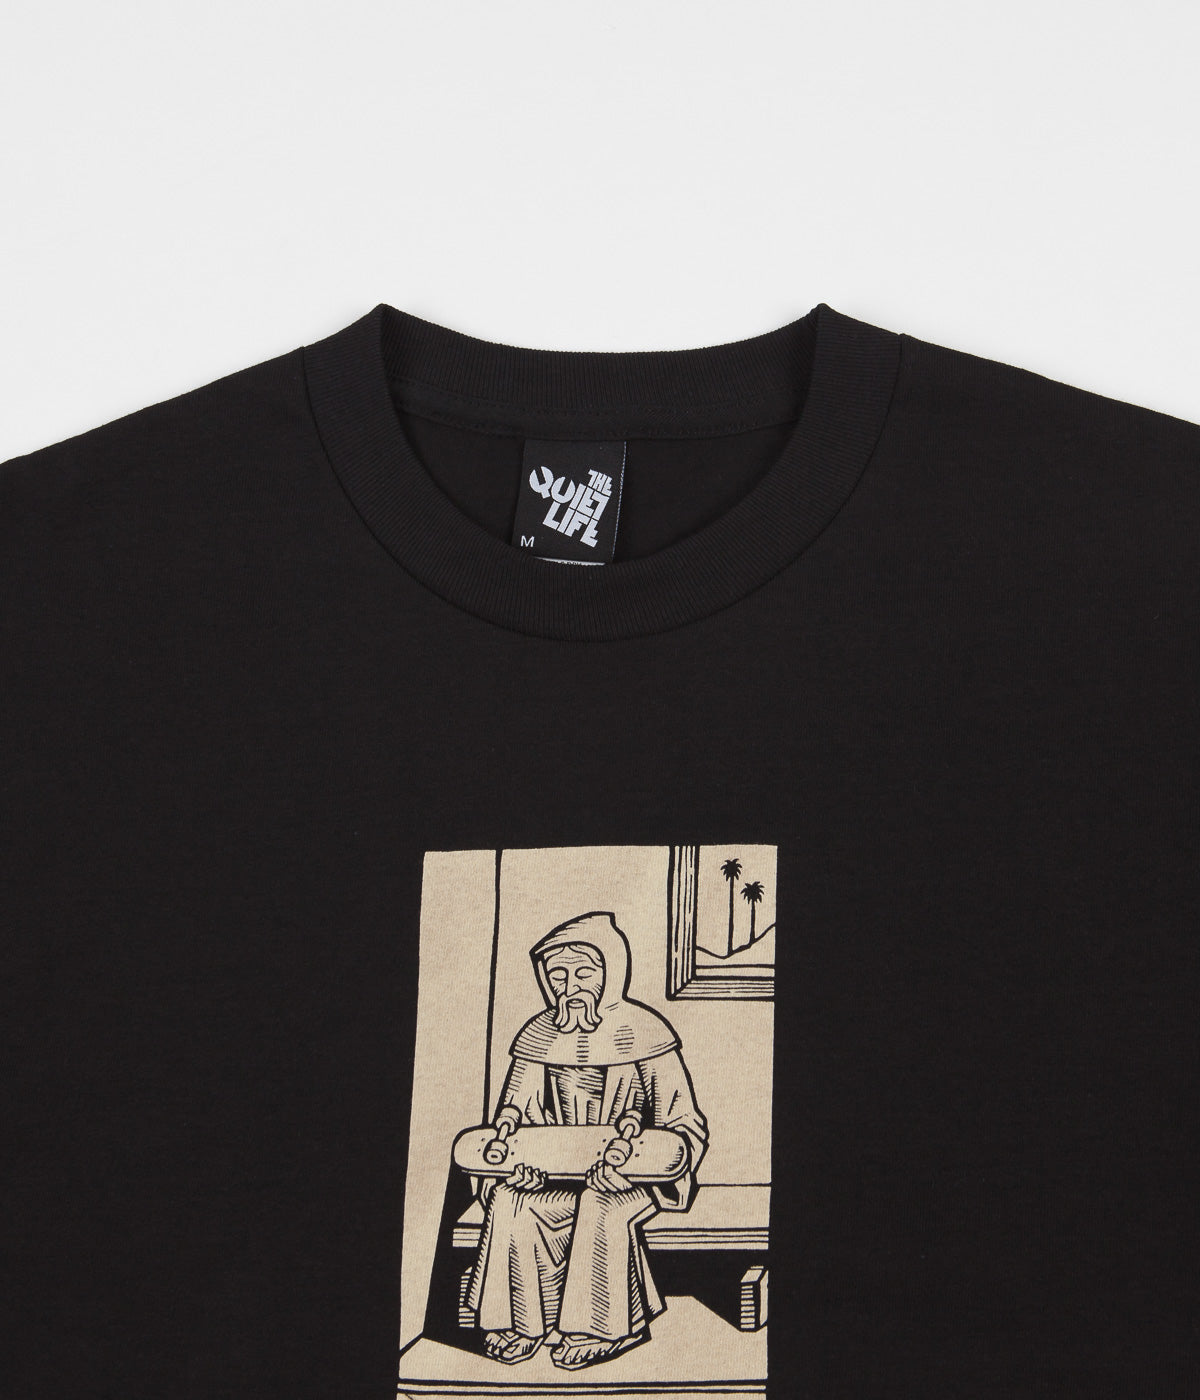 The Quiet Life Monk T-Shirt - Black